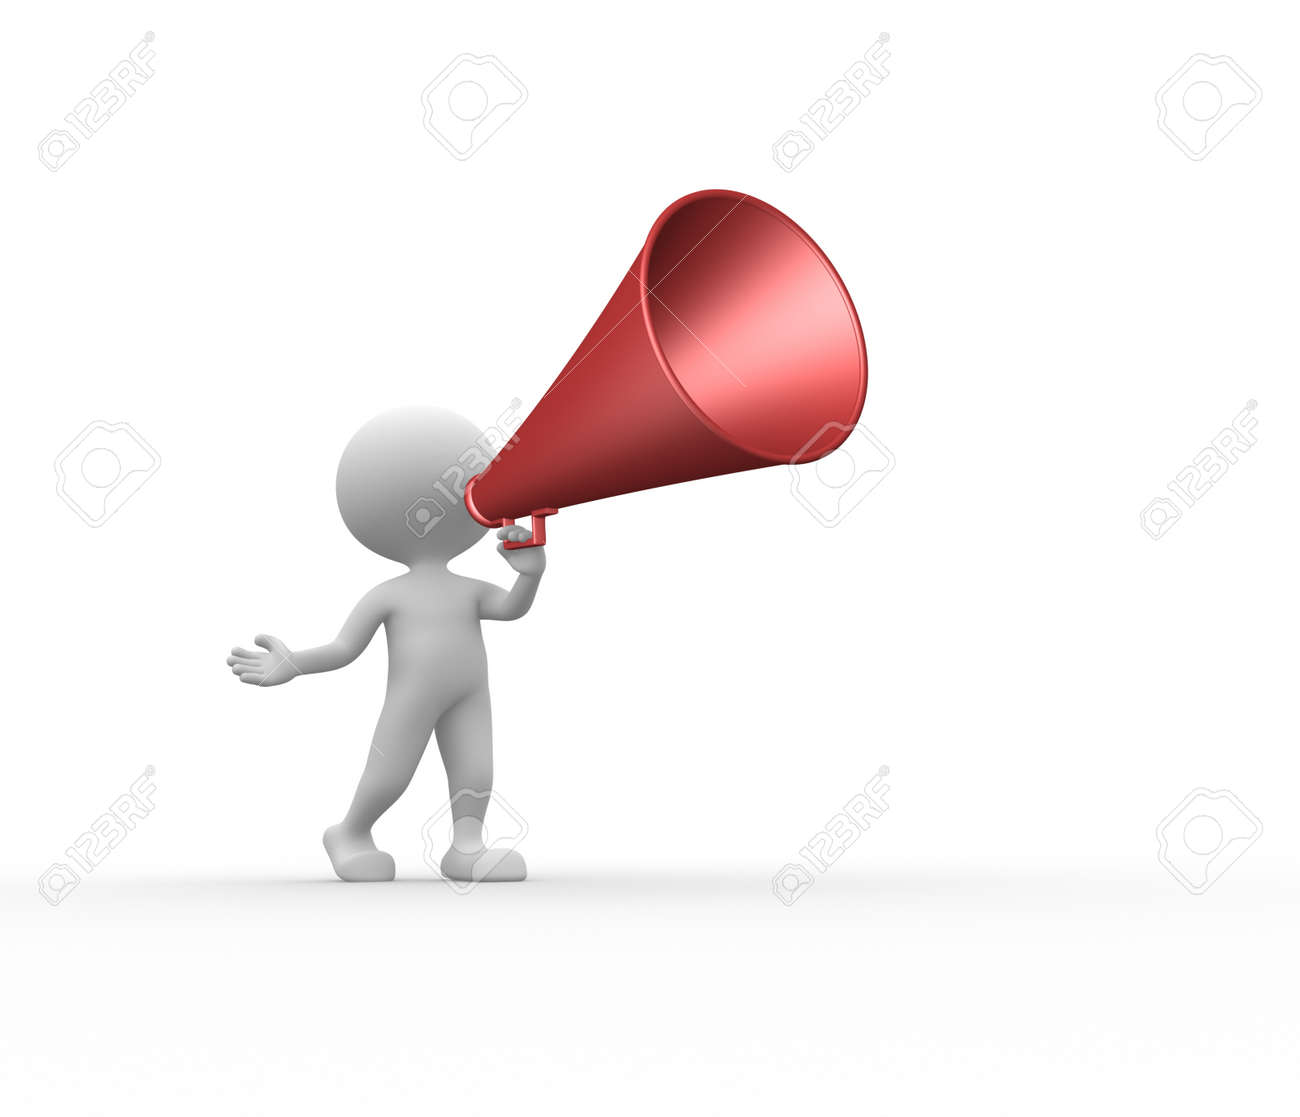 3d people - man, person and old megaphone Stock Photo - 25585952